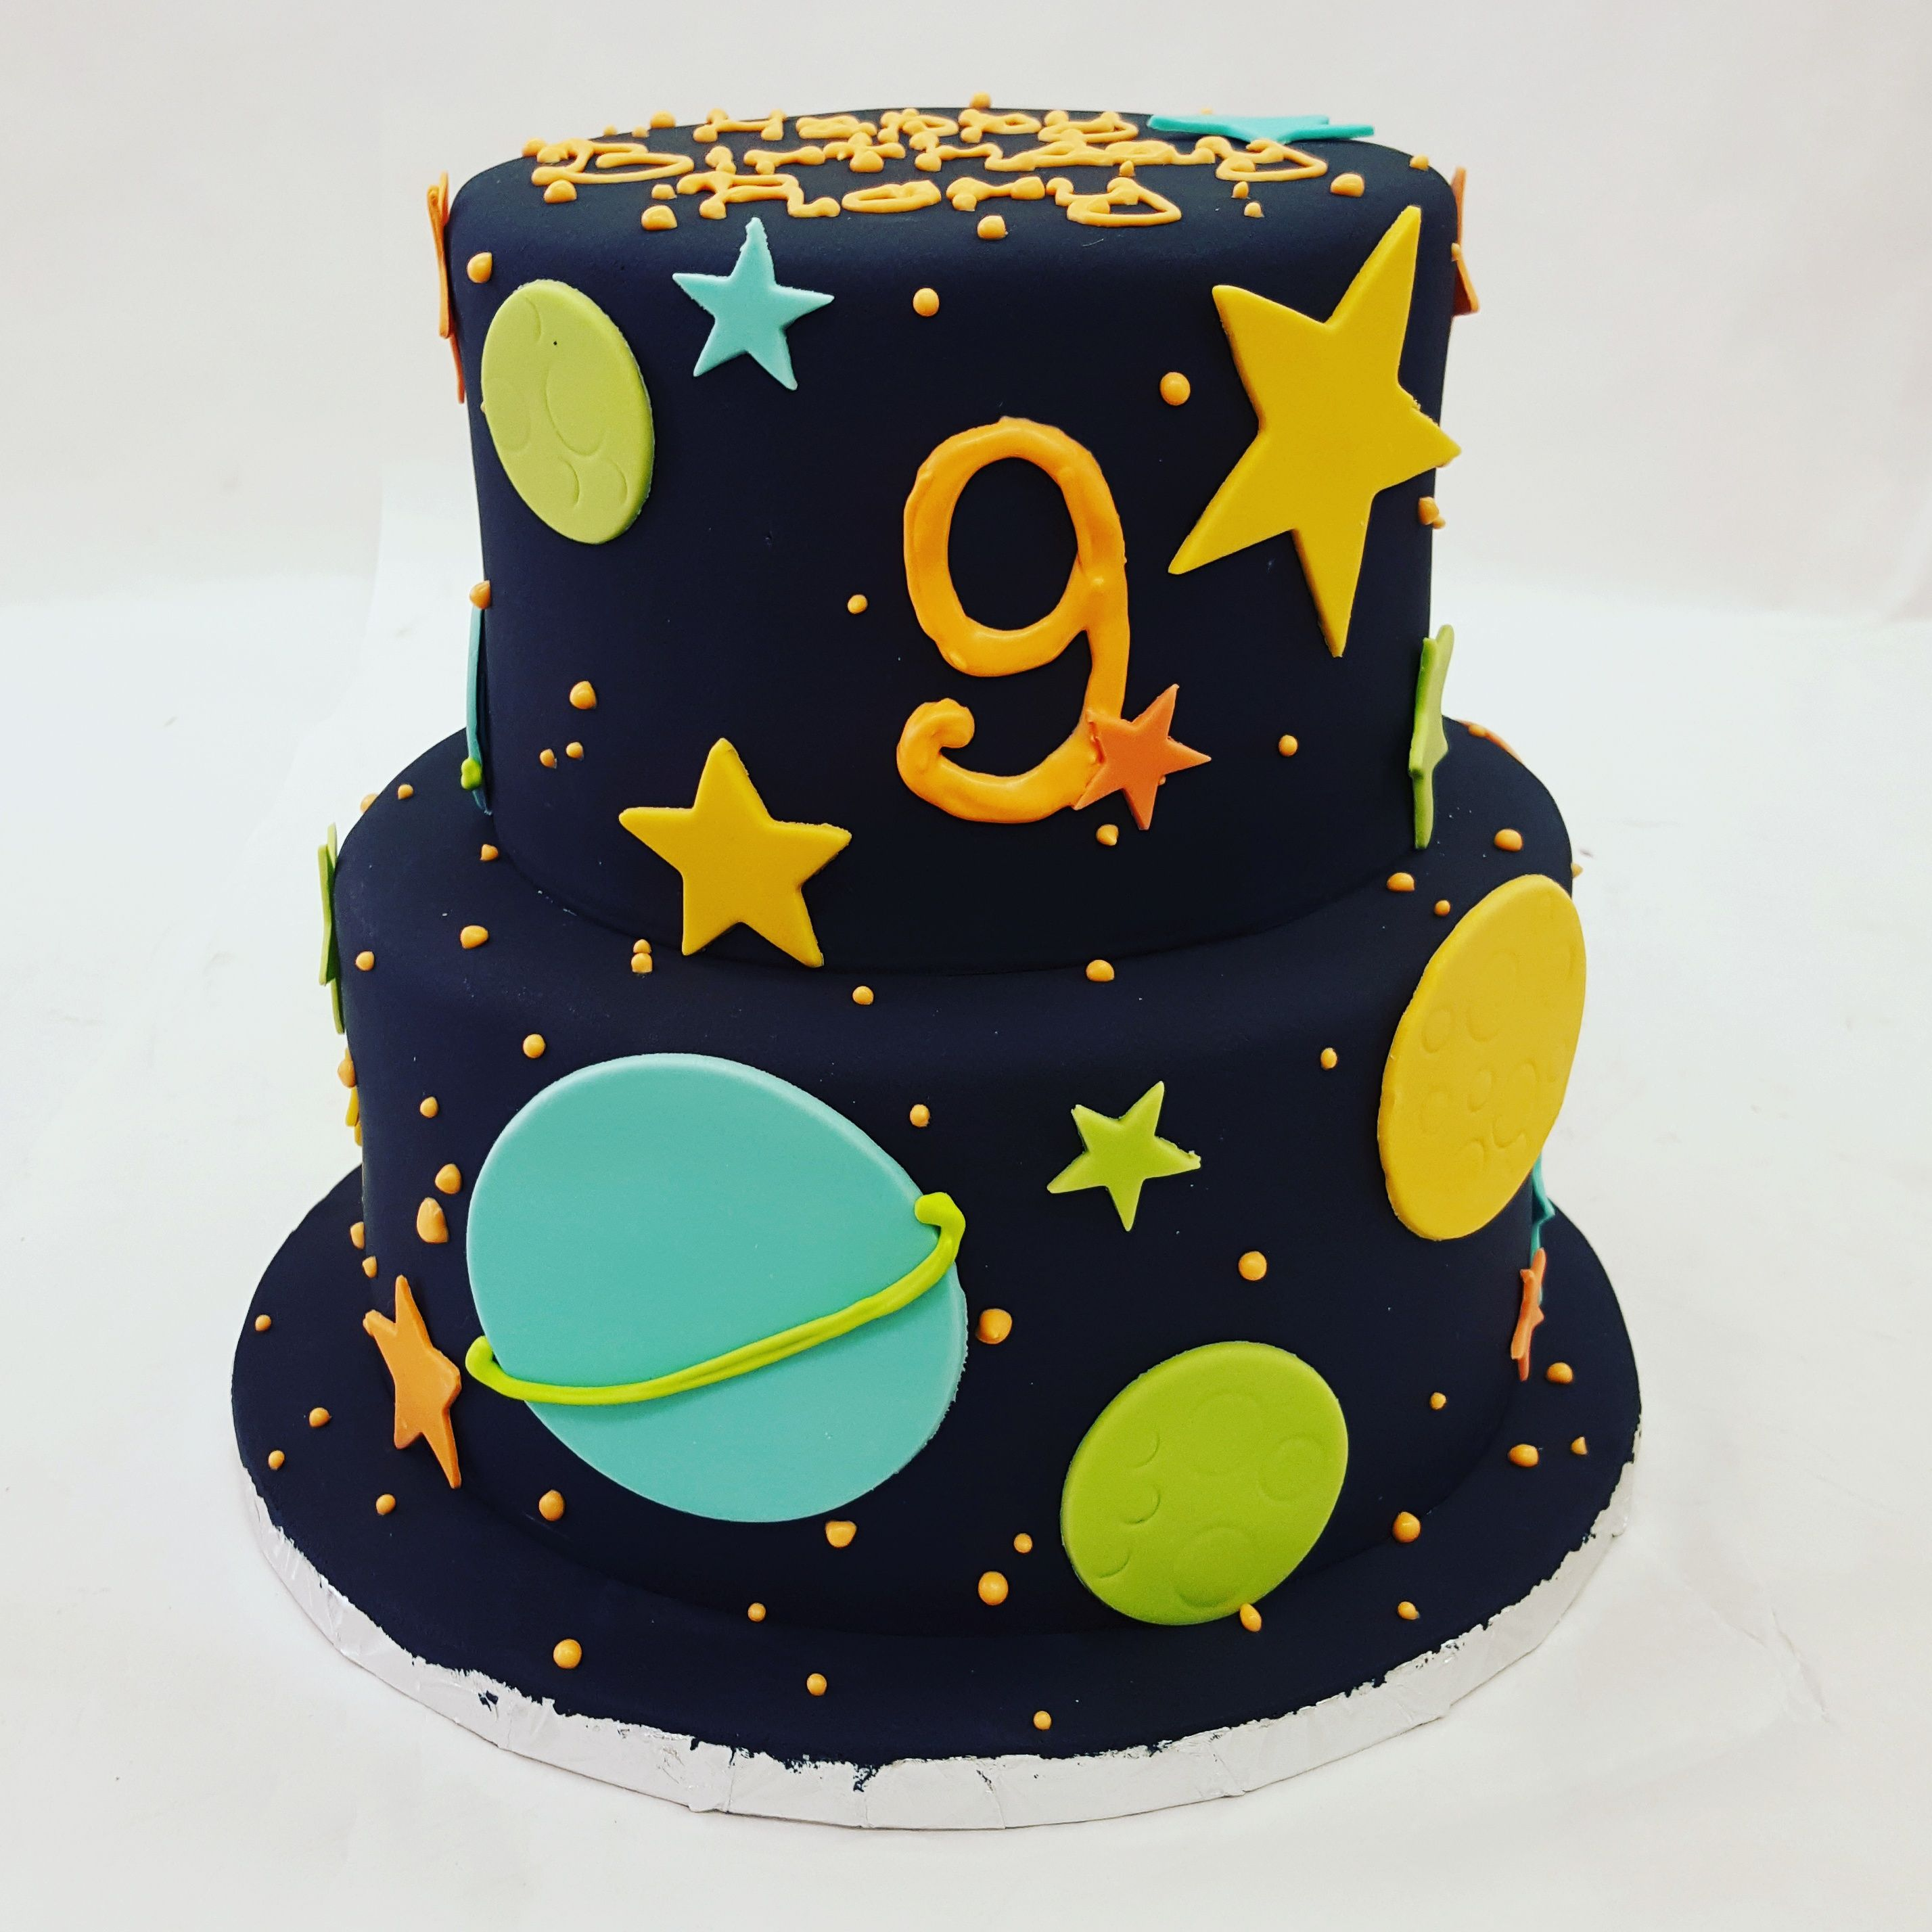 Peachy An Outer Space Glow In The Dark Themed Cake With Images Glow Funny Birthday Cards Online Sheoxdamsfinfo